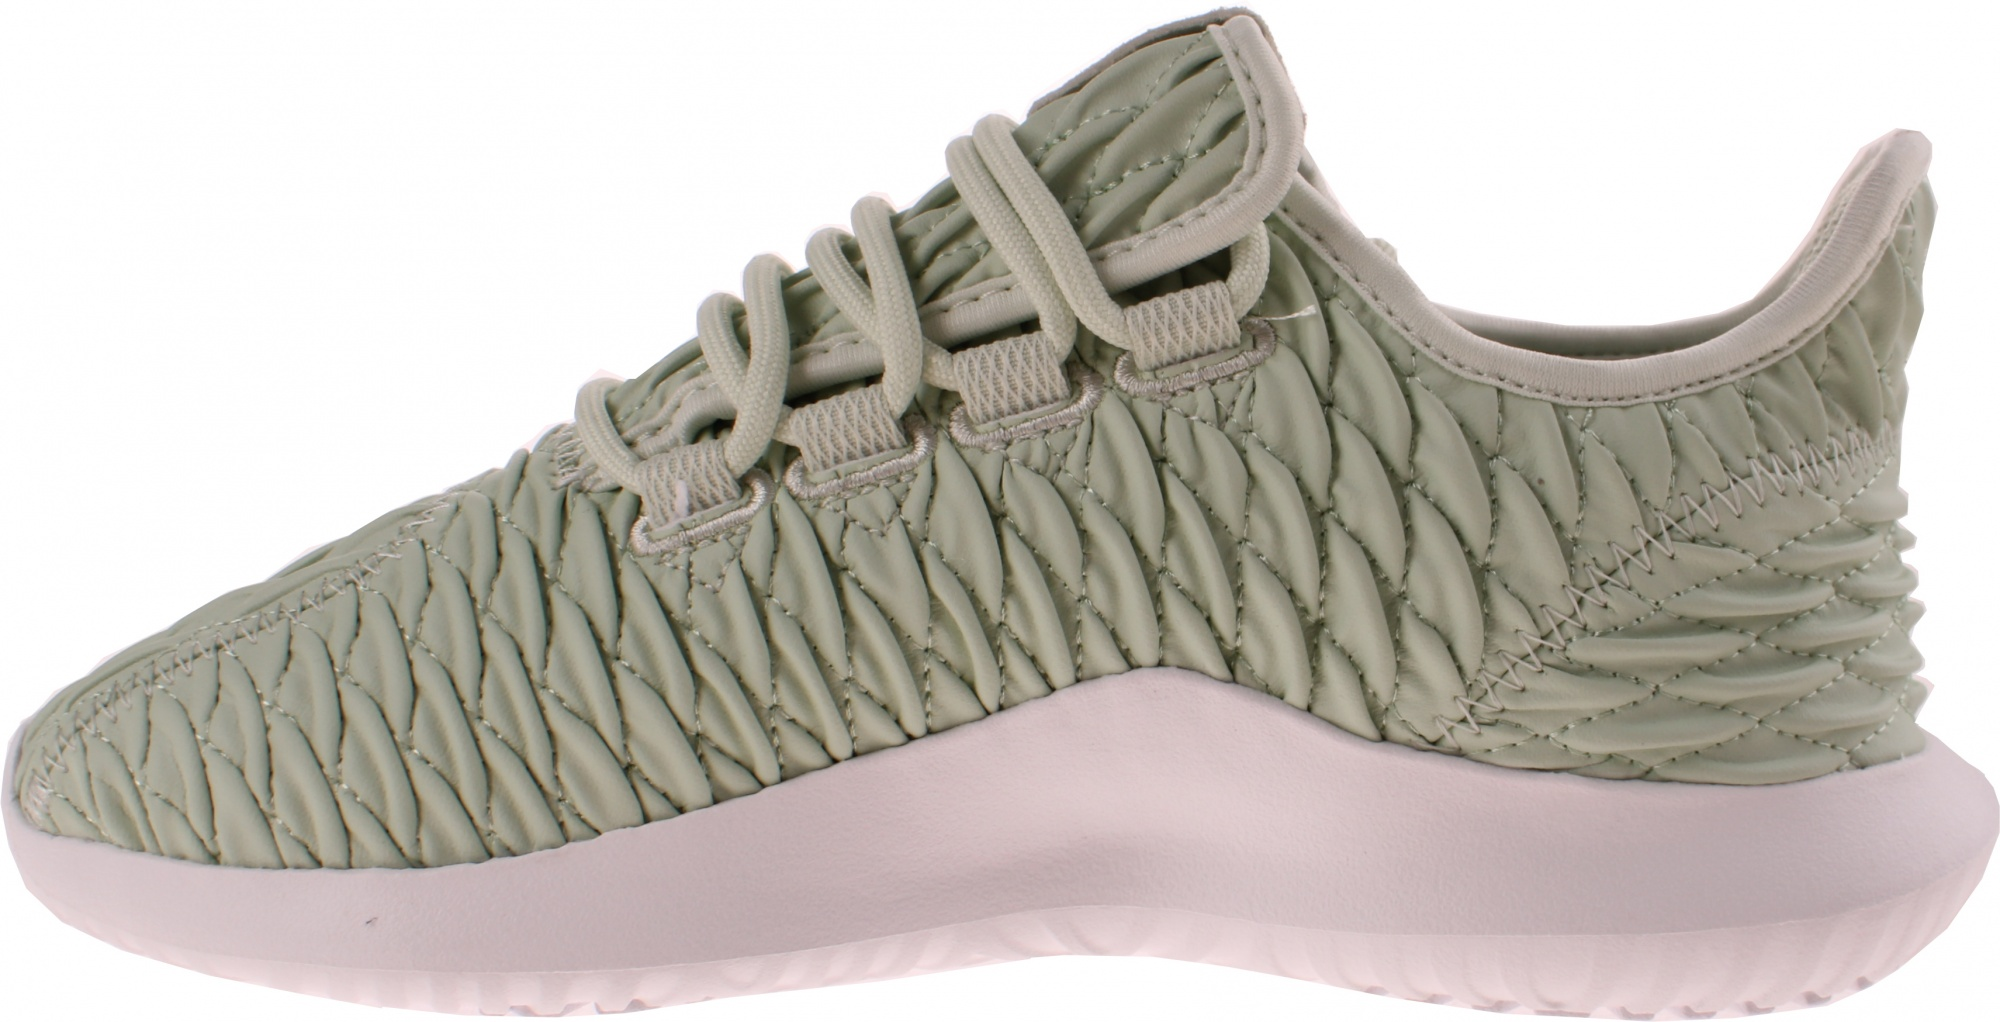 04315e34c7d adidas sneakers Tubular Shadow ladies mint green adidas sneakers Tubular  Shadow ladies mint green ...